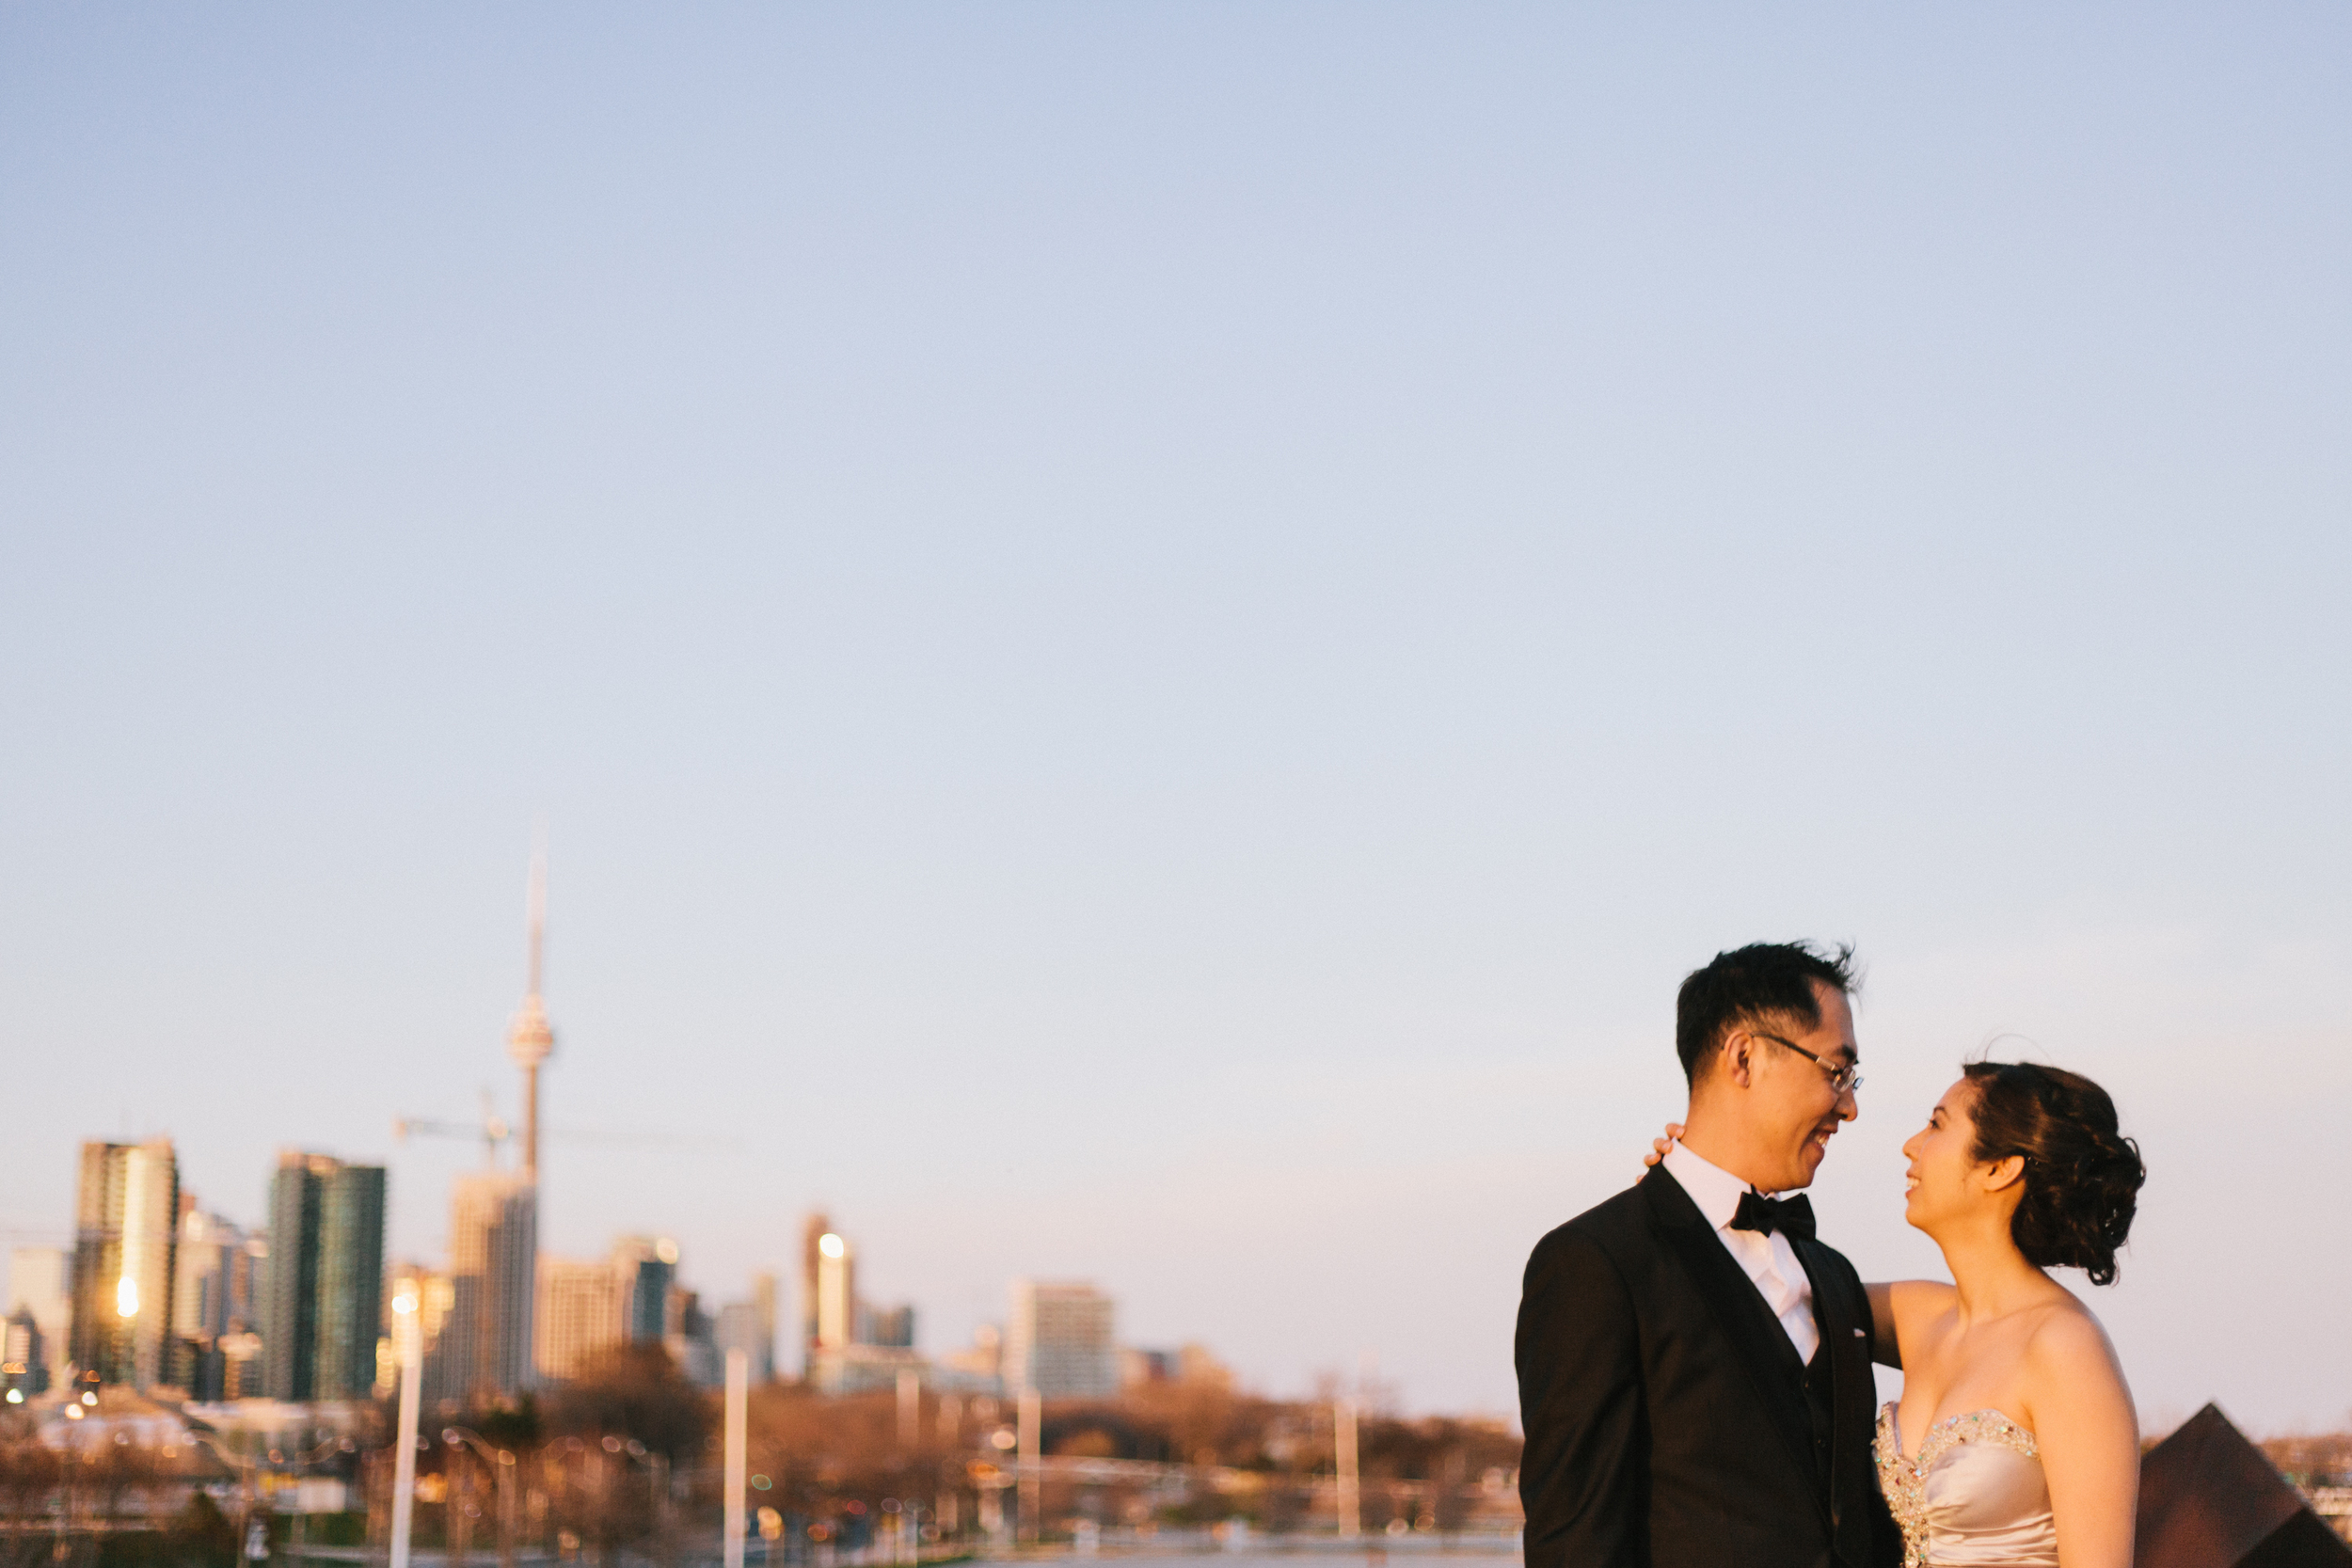 Atlantis Wedding- Michael Rousseau Photography, Theresa and Calvin, Frans diner-high end wedding photography027.jpg